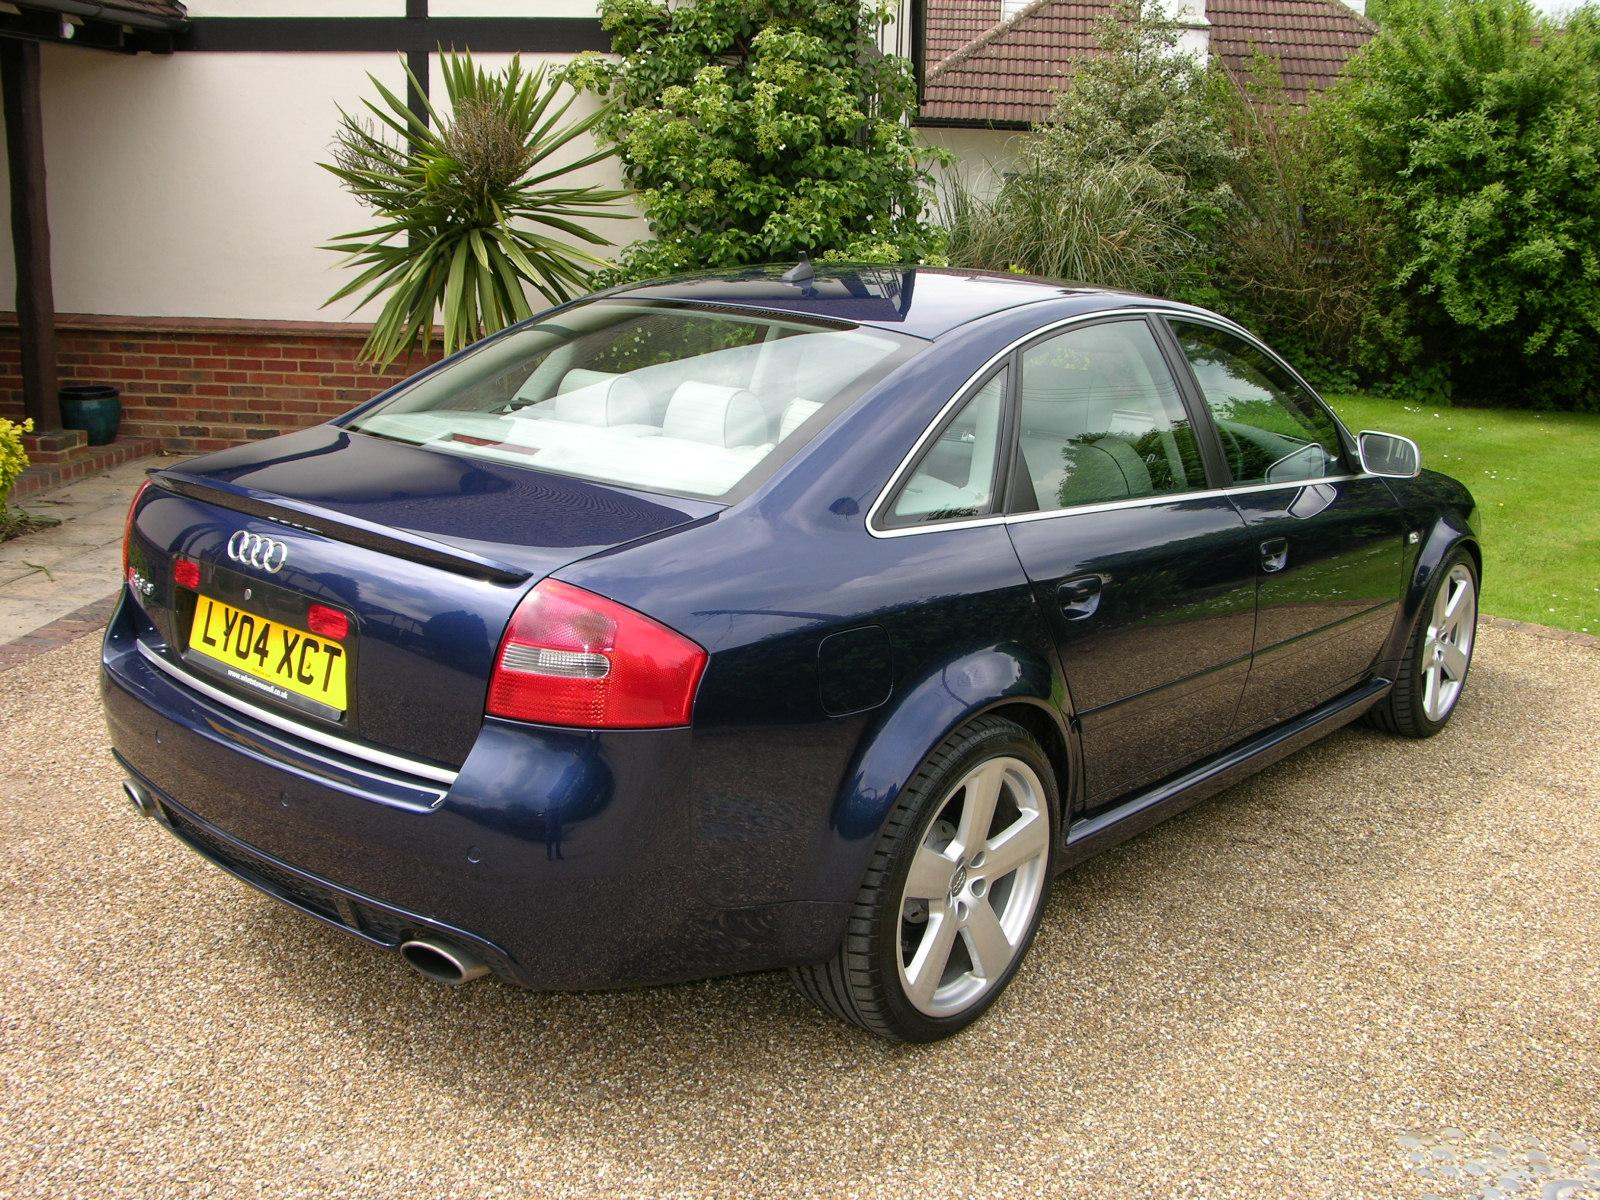 2002 audi a6 4b c5 pictures information and specs. Black Bedroom Furniture Sets. Home Design Ideas